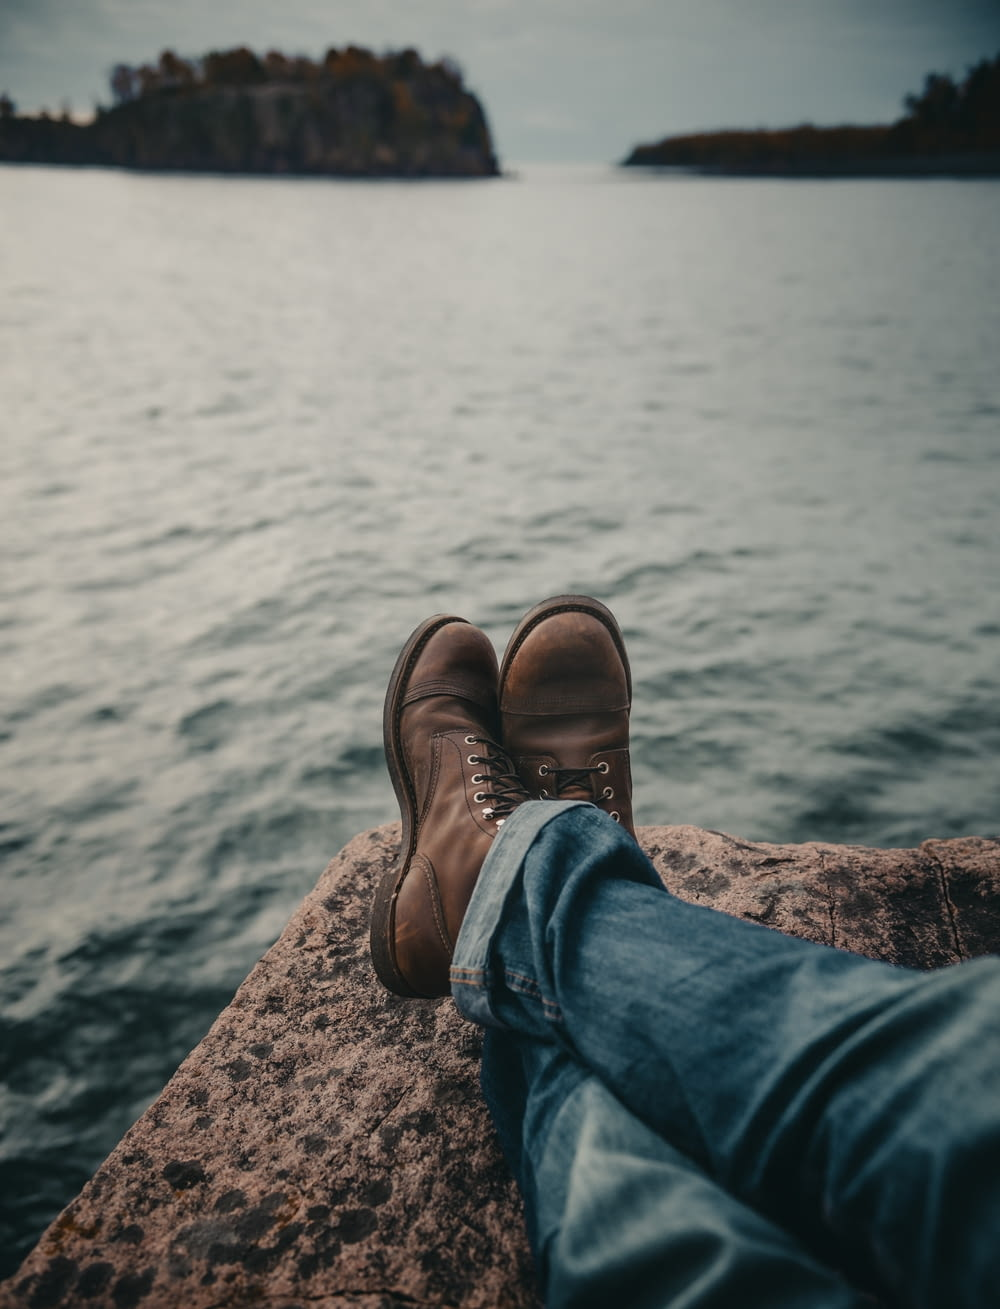 person in blue denim jeans and brown leather boots sitting on rock near body of water